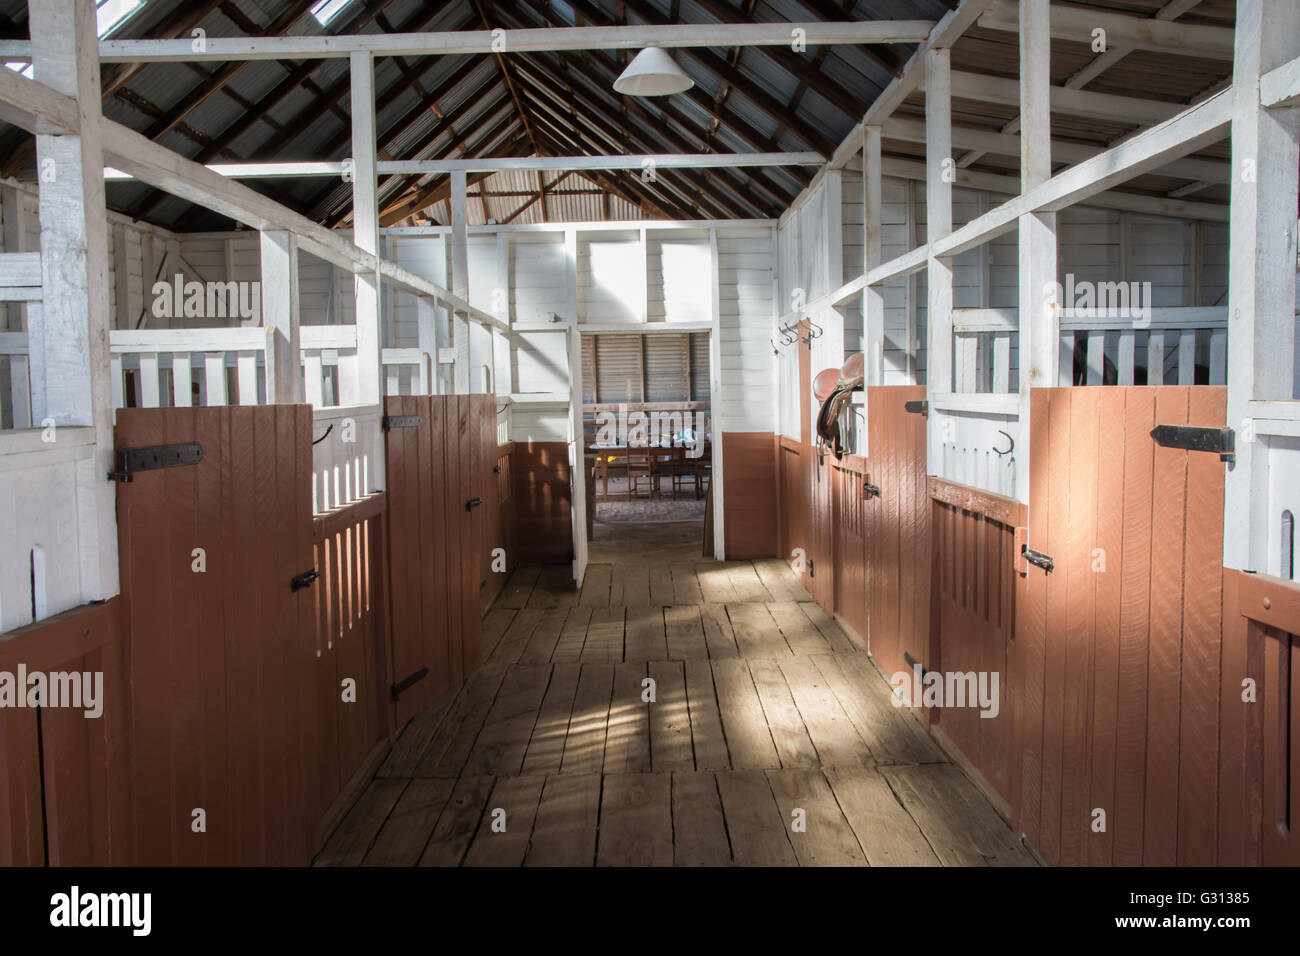 Interior of Stables at Saumarez Homestead, a National Trust property at Armidale NSW Australia - Stock Image